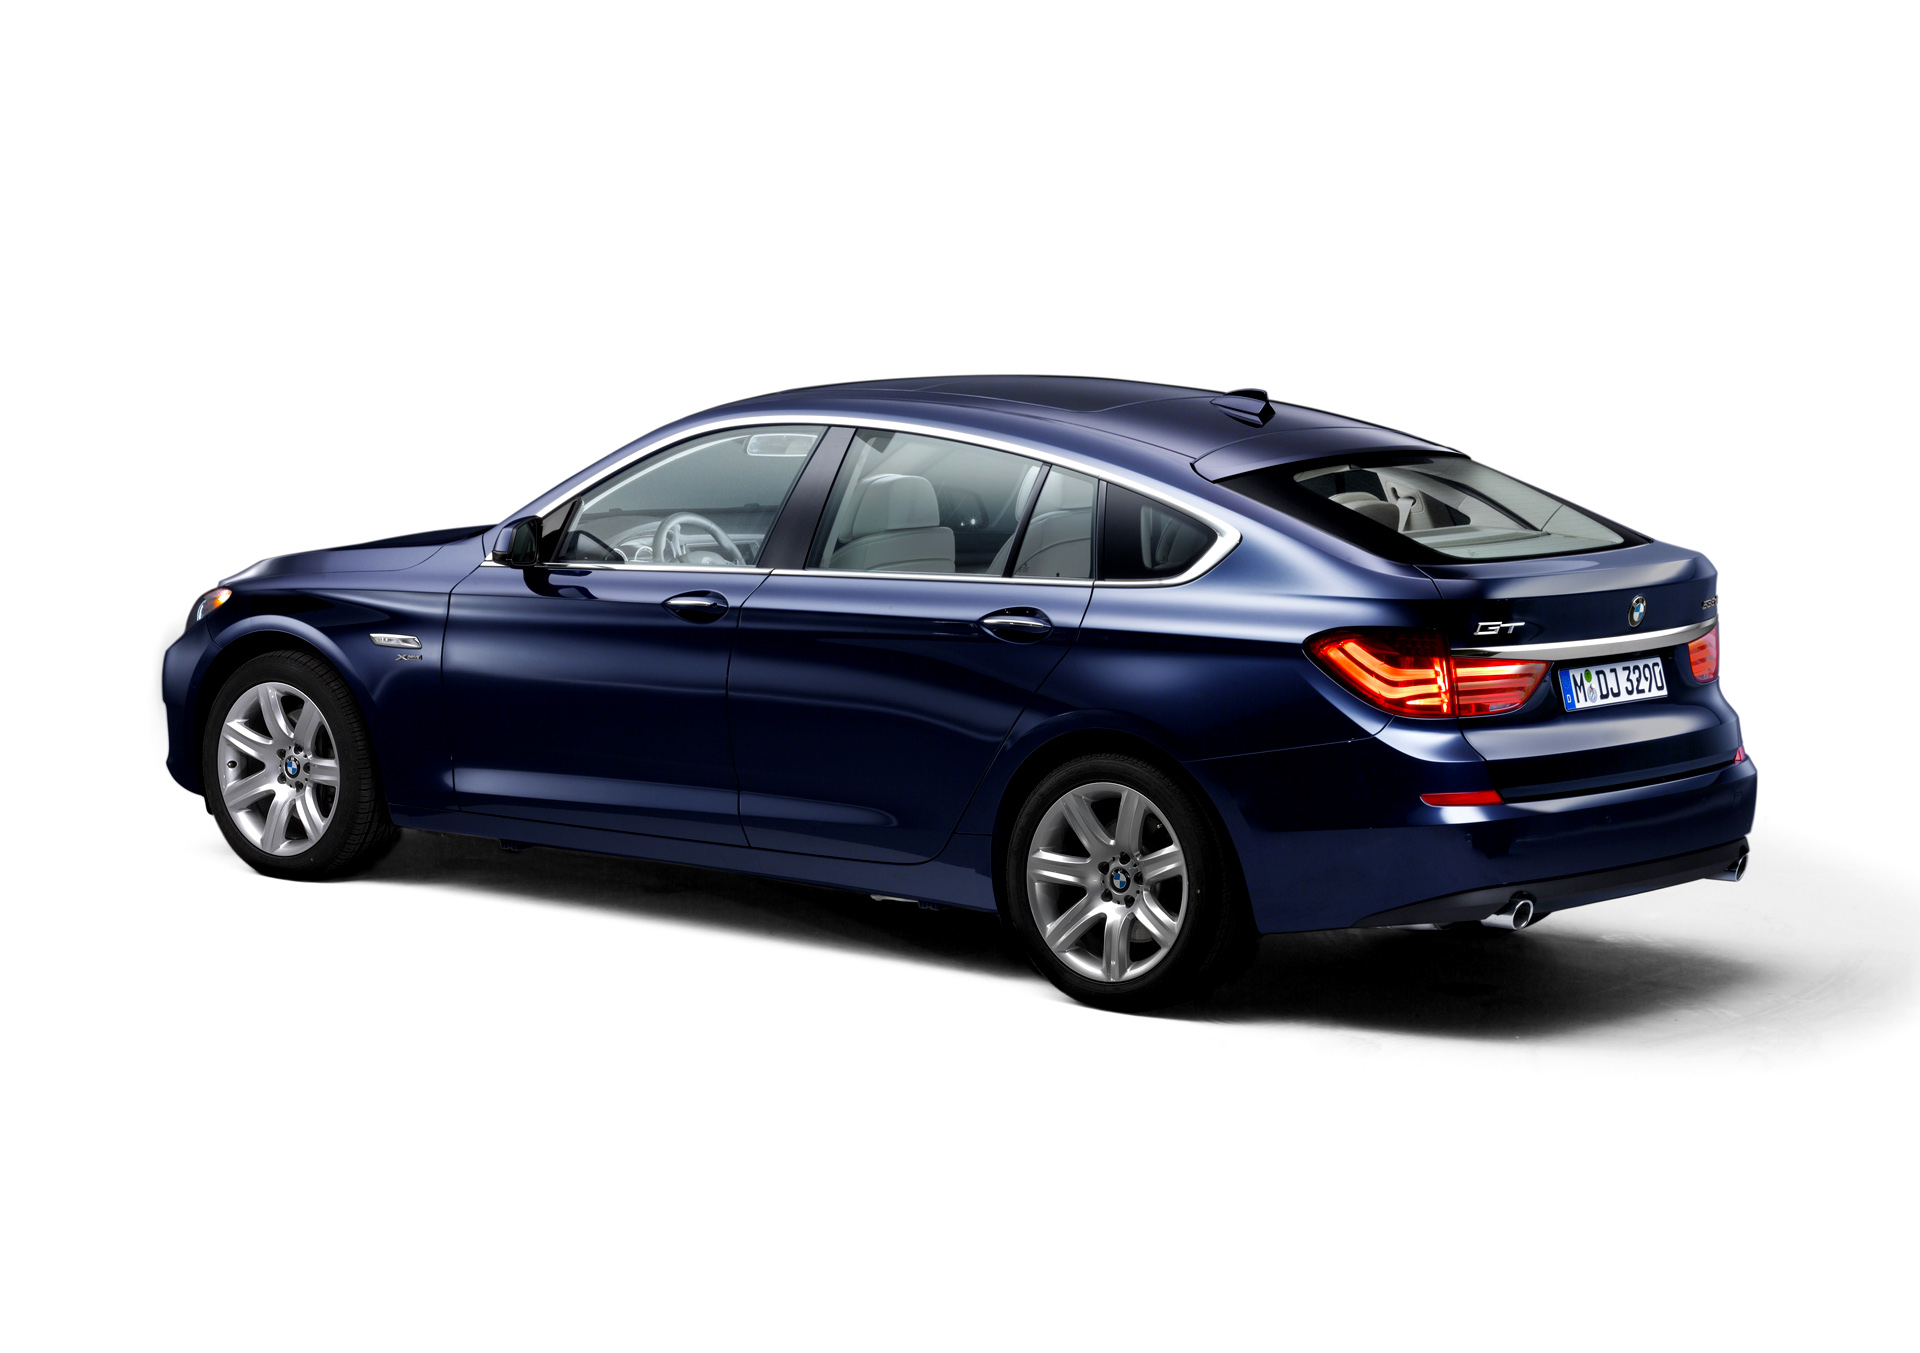 BMW XDrive On All Engine Variants Of The BMW Series Gran Turismo - 2013 bmw gt